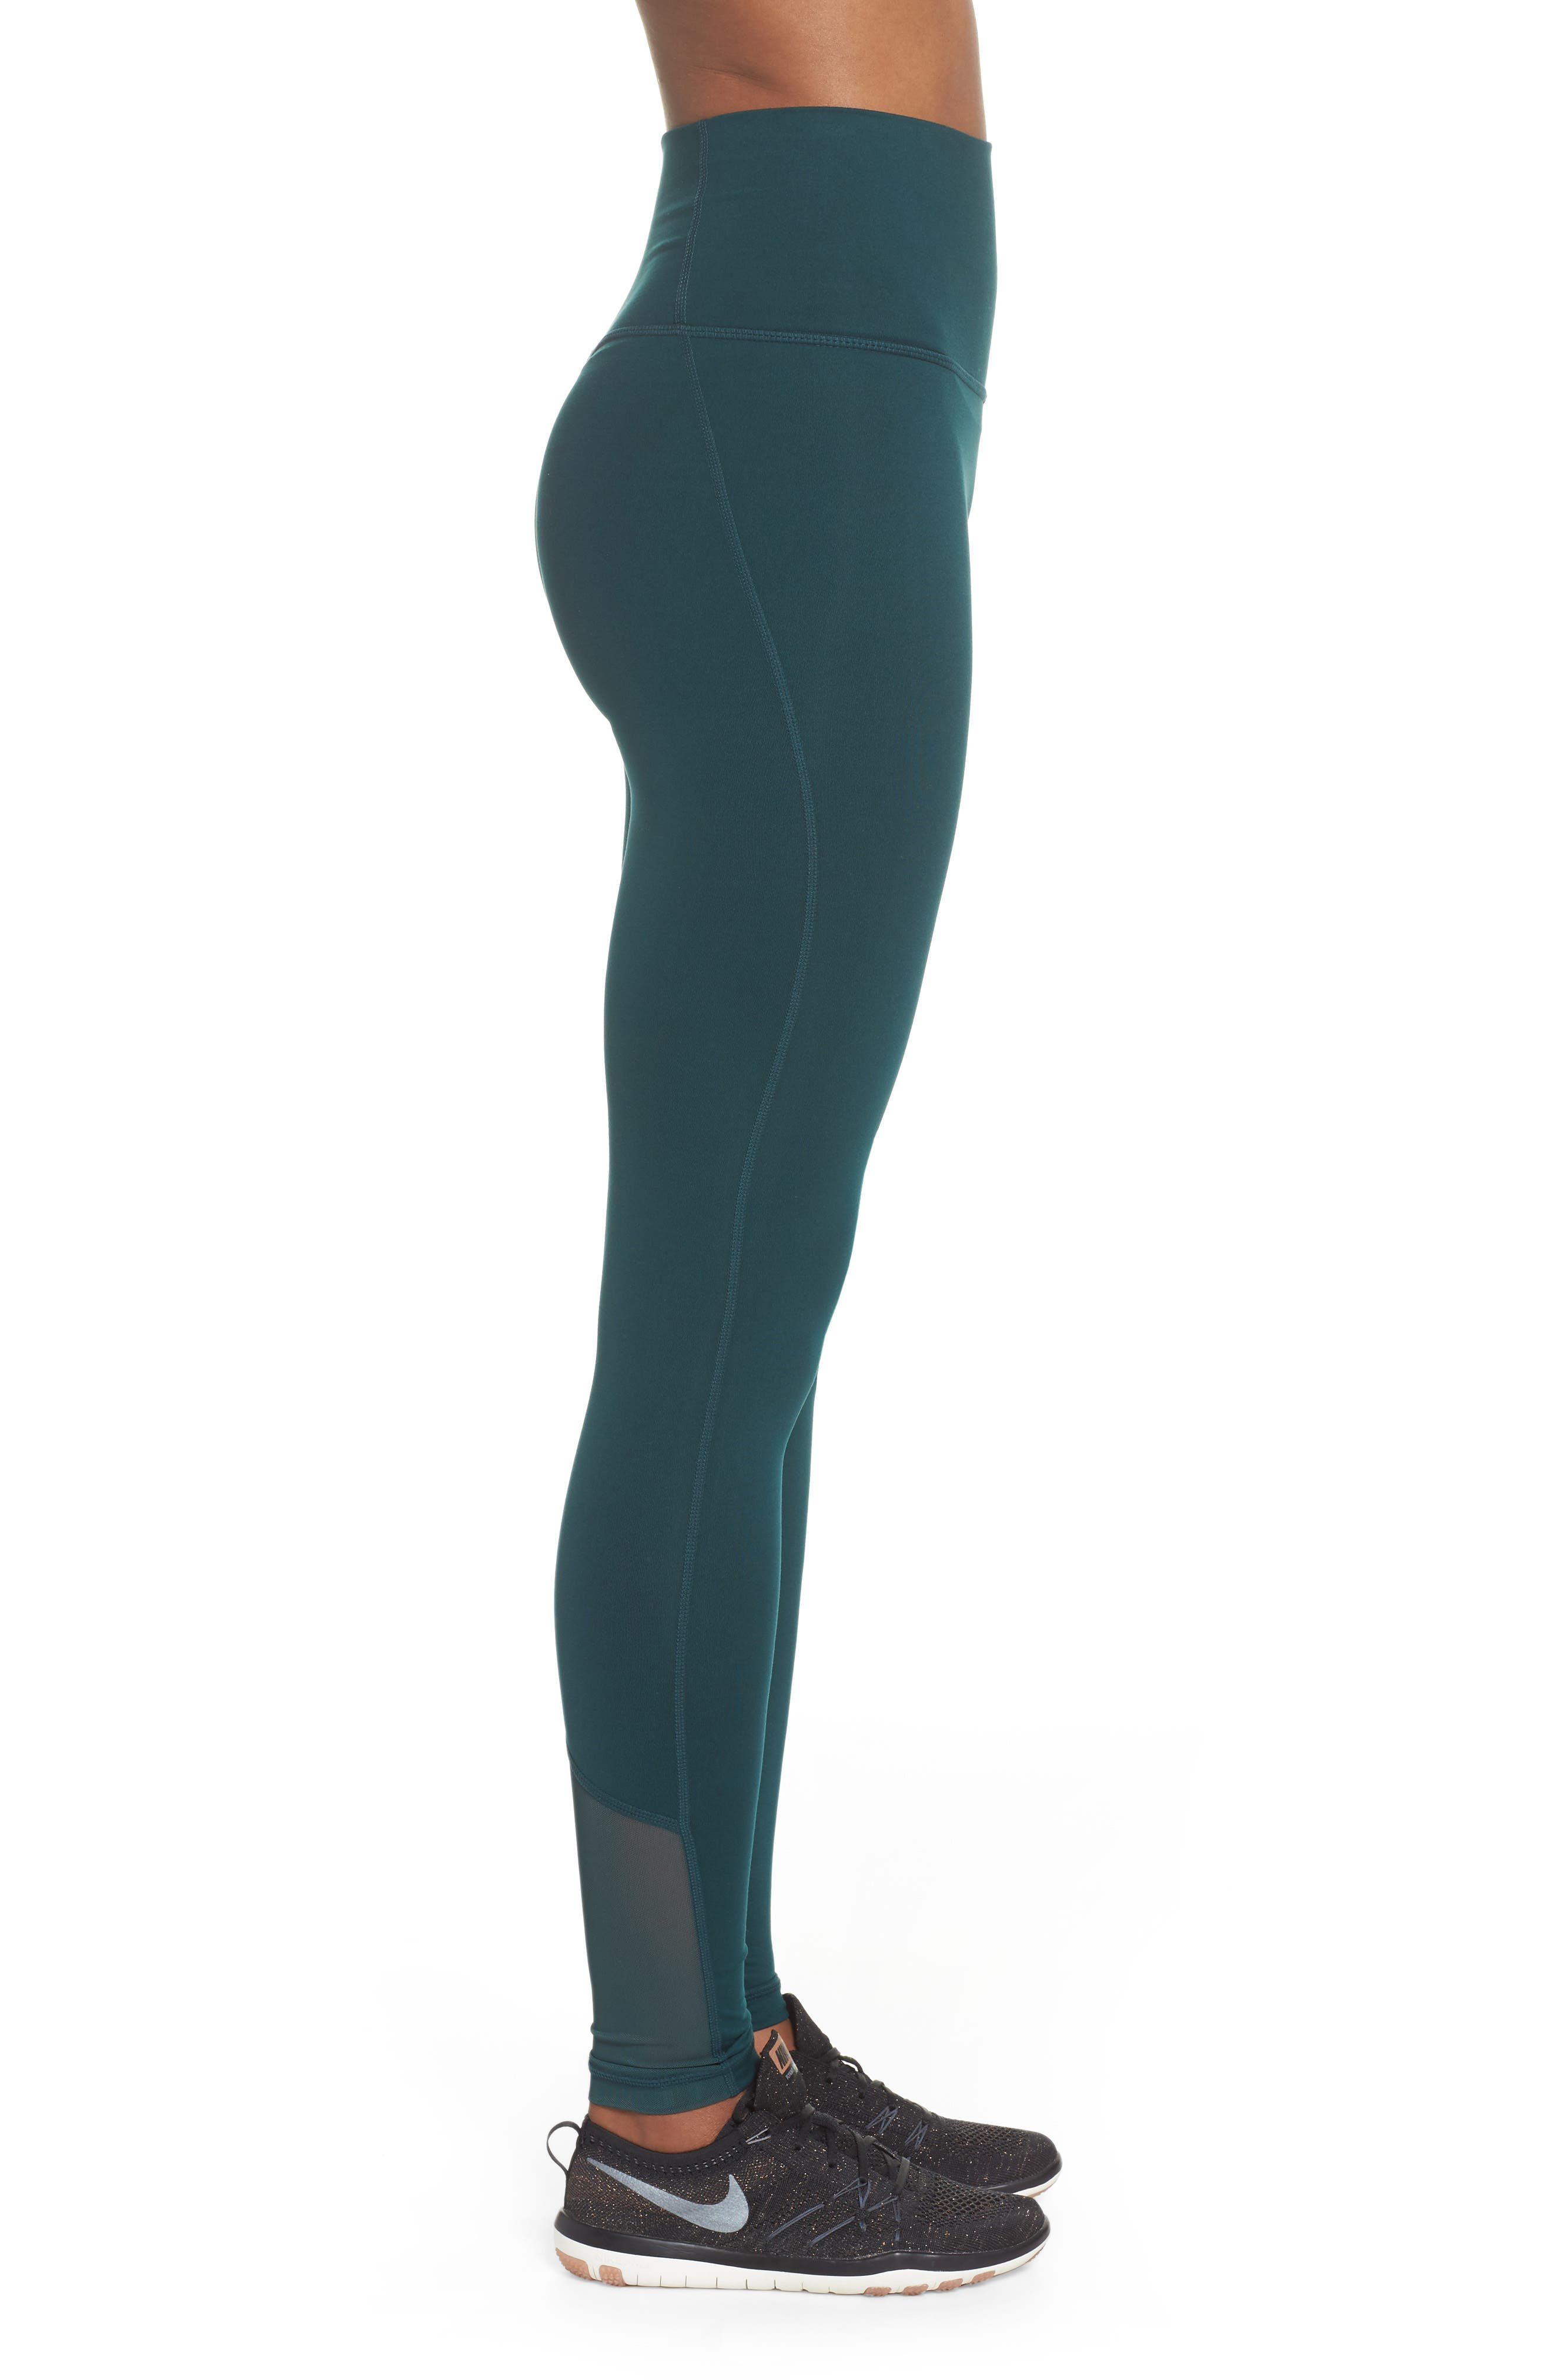 High Waist Asana Light Leggings,                             Alternate thumbnail 3, color,                             301